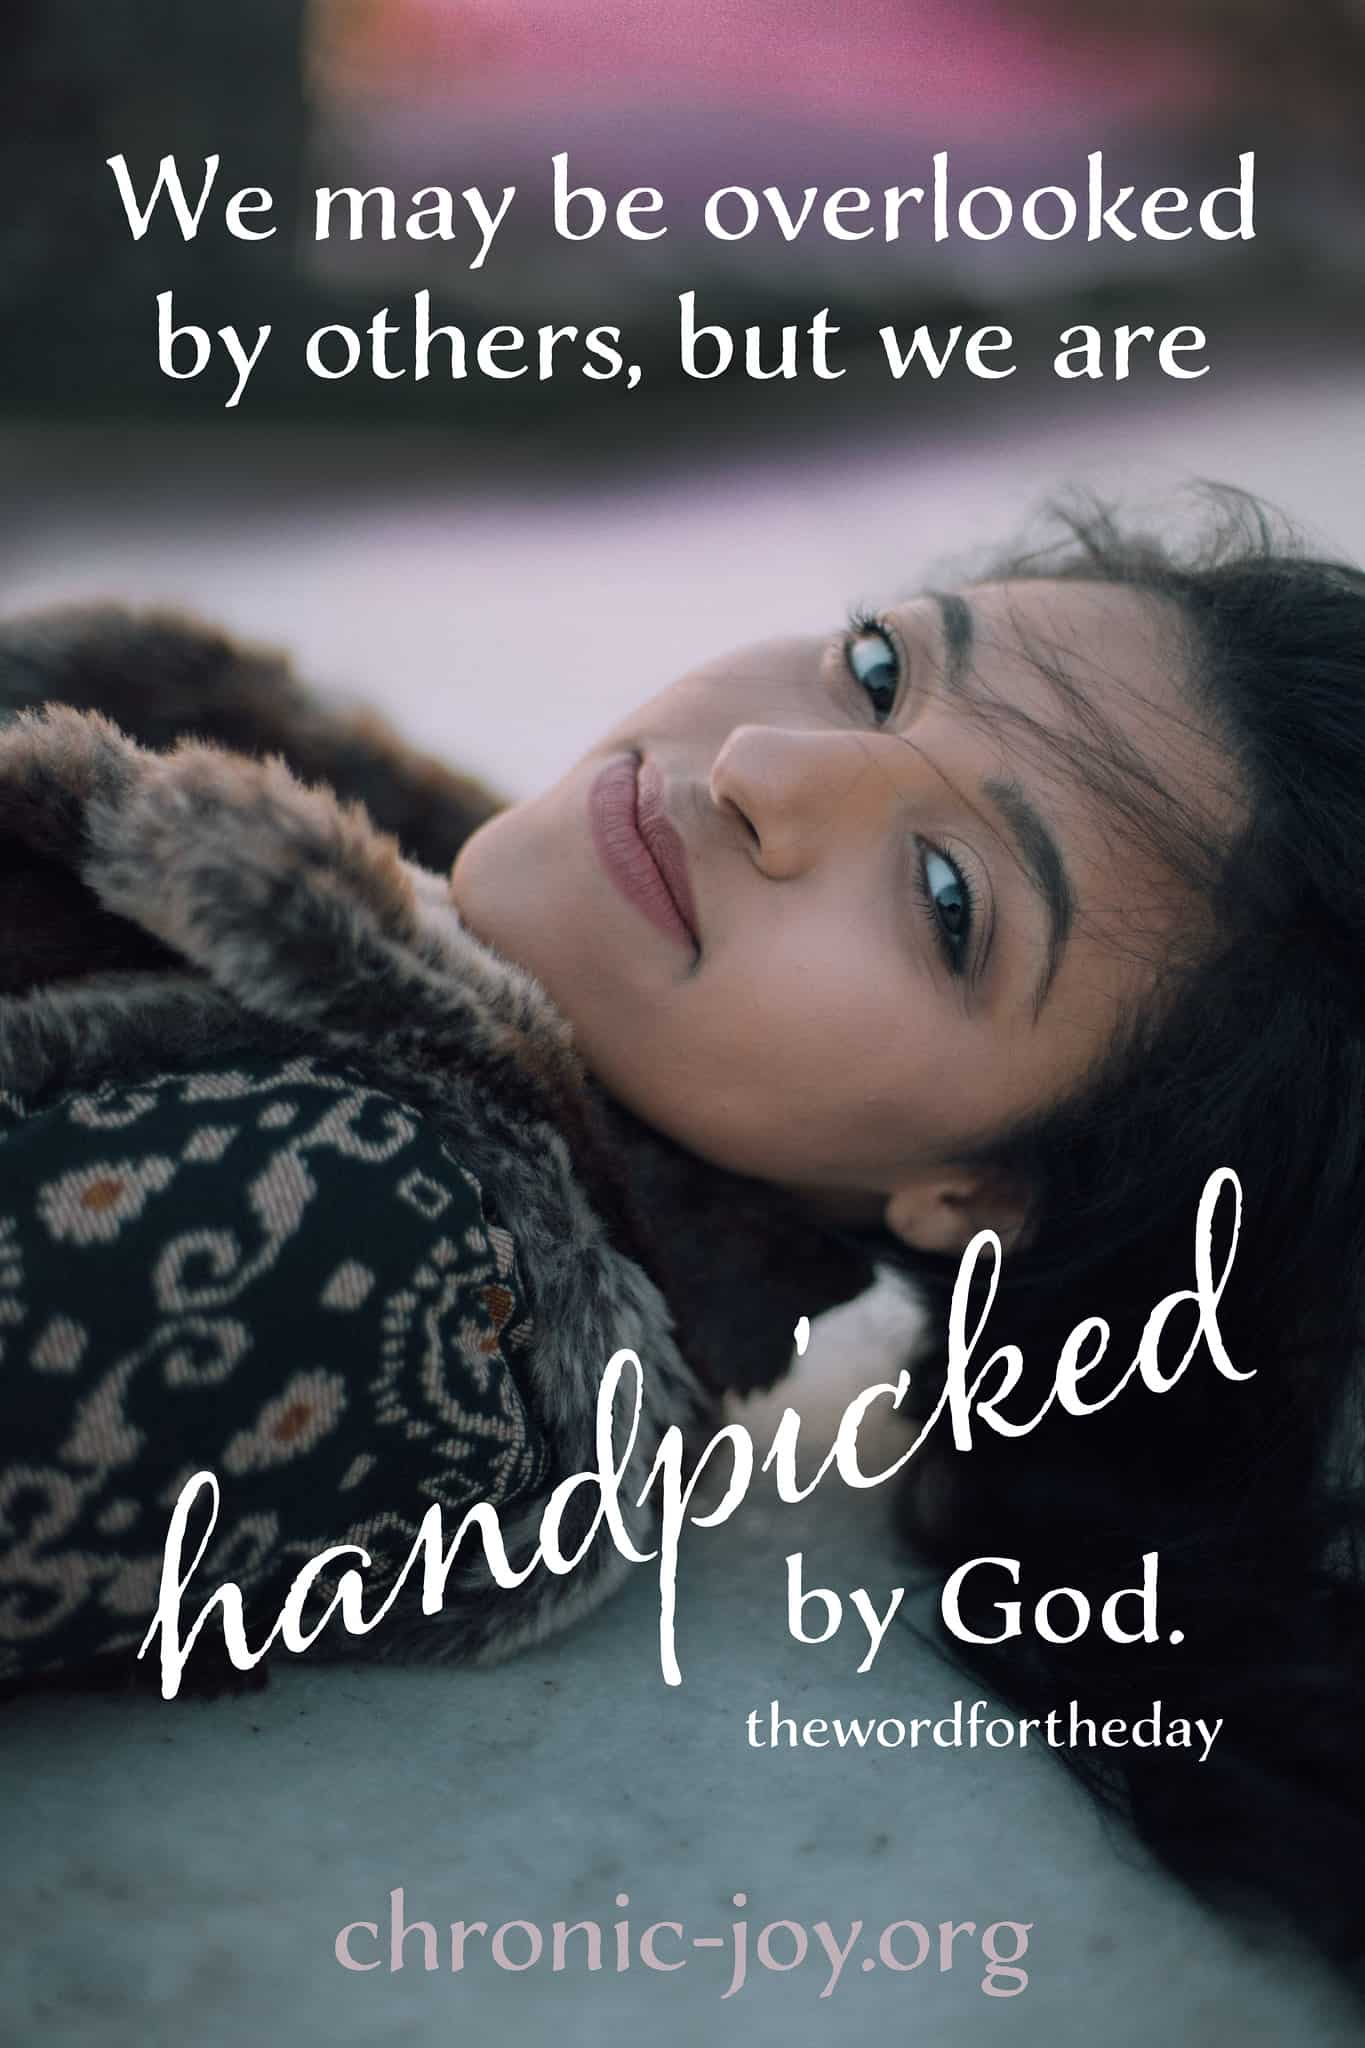 We might be overlooked by others, but we are handpicked by God.